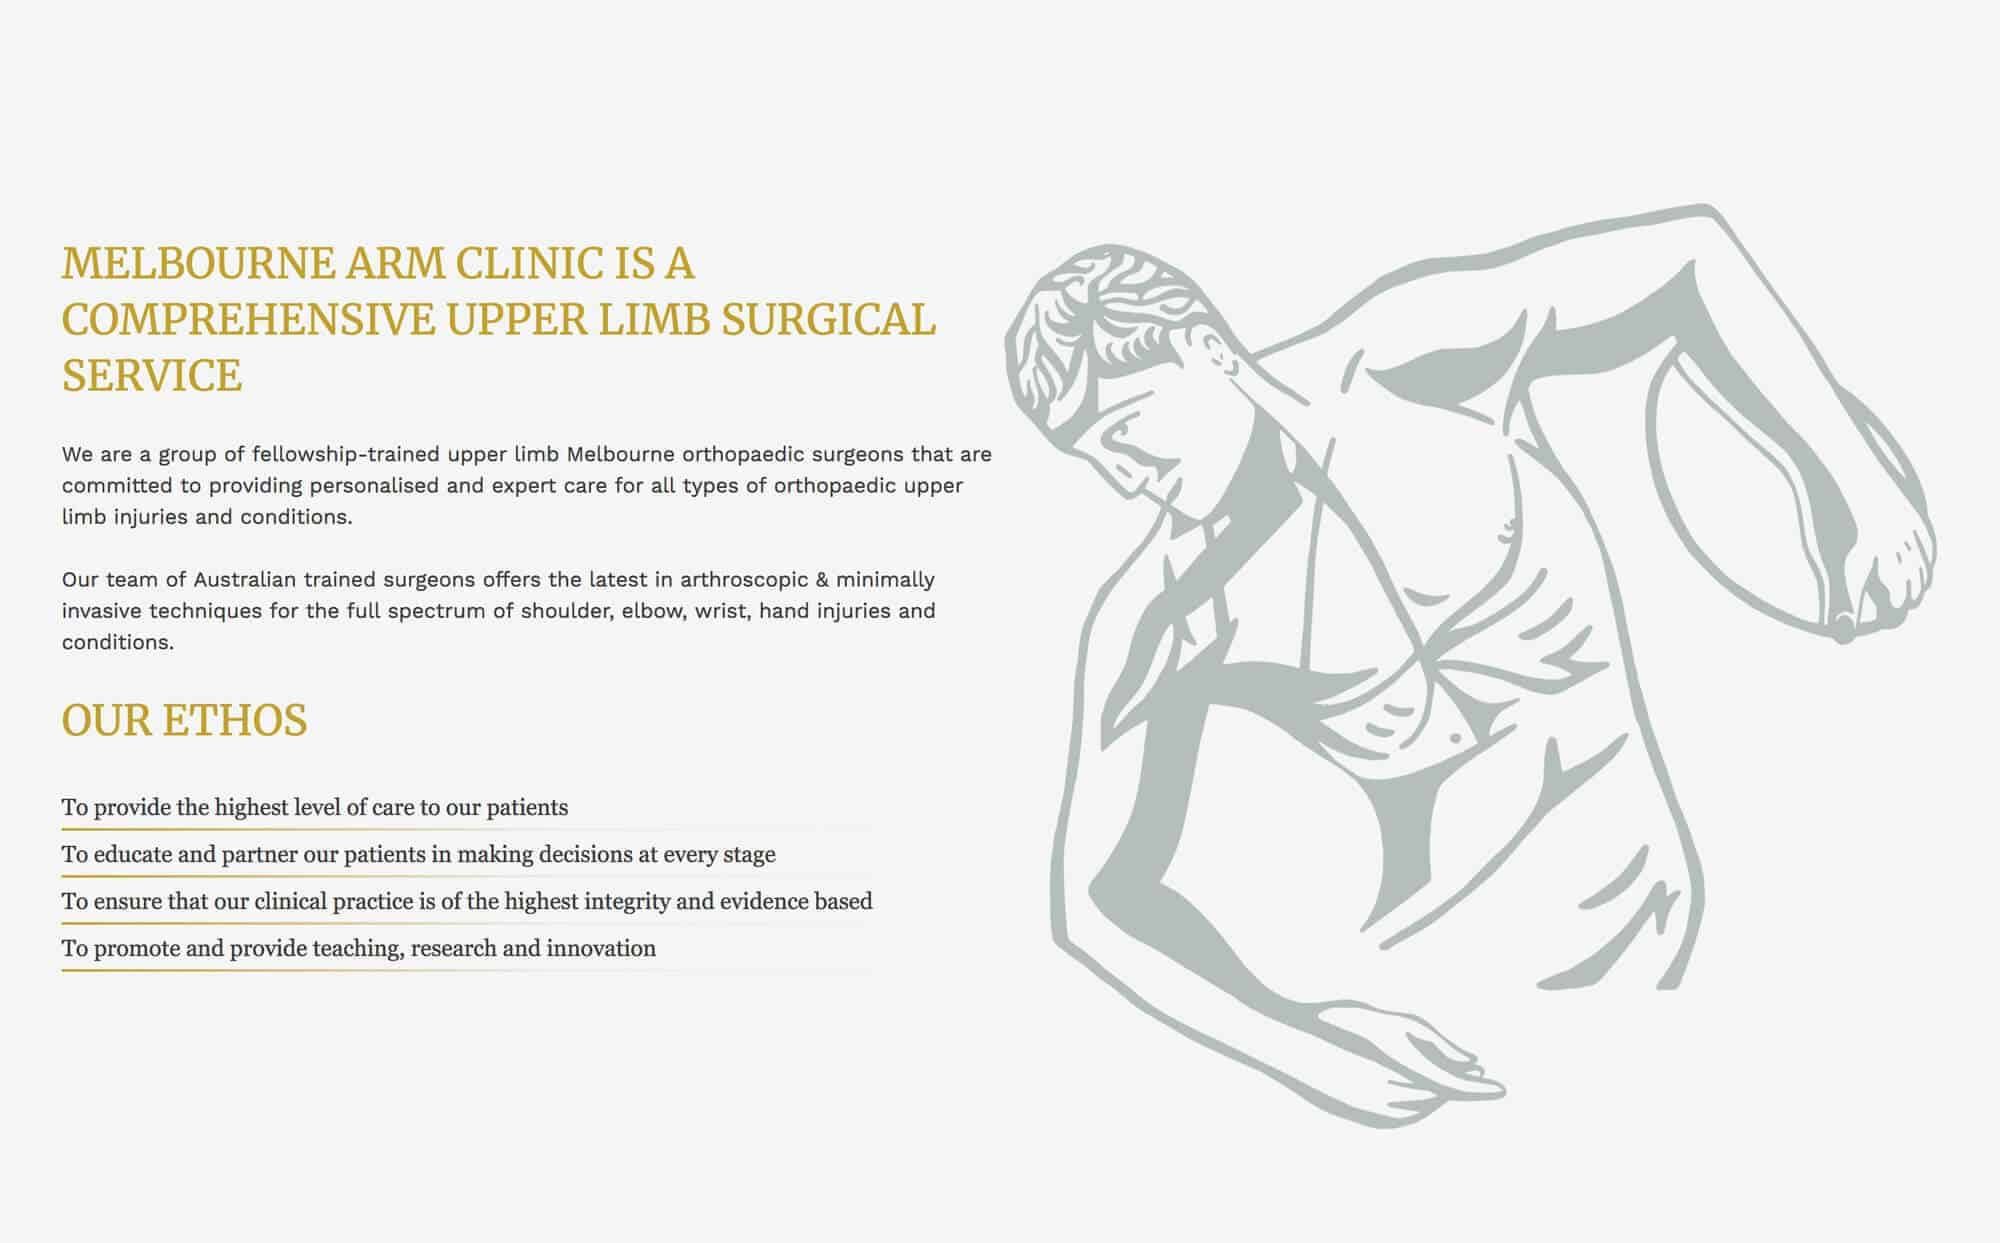 melbourne arm clinic homepage